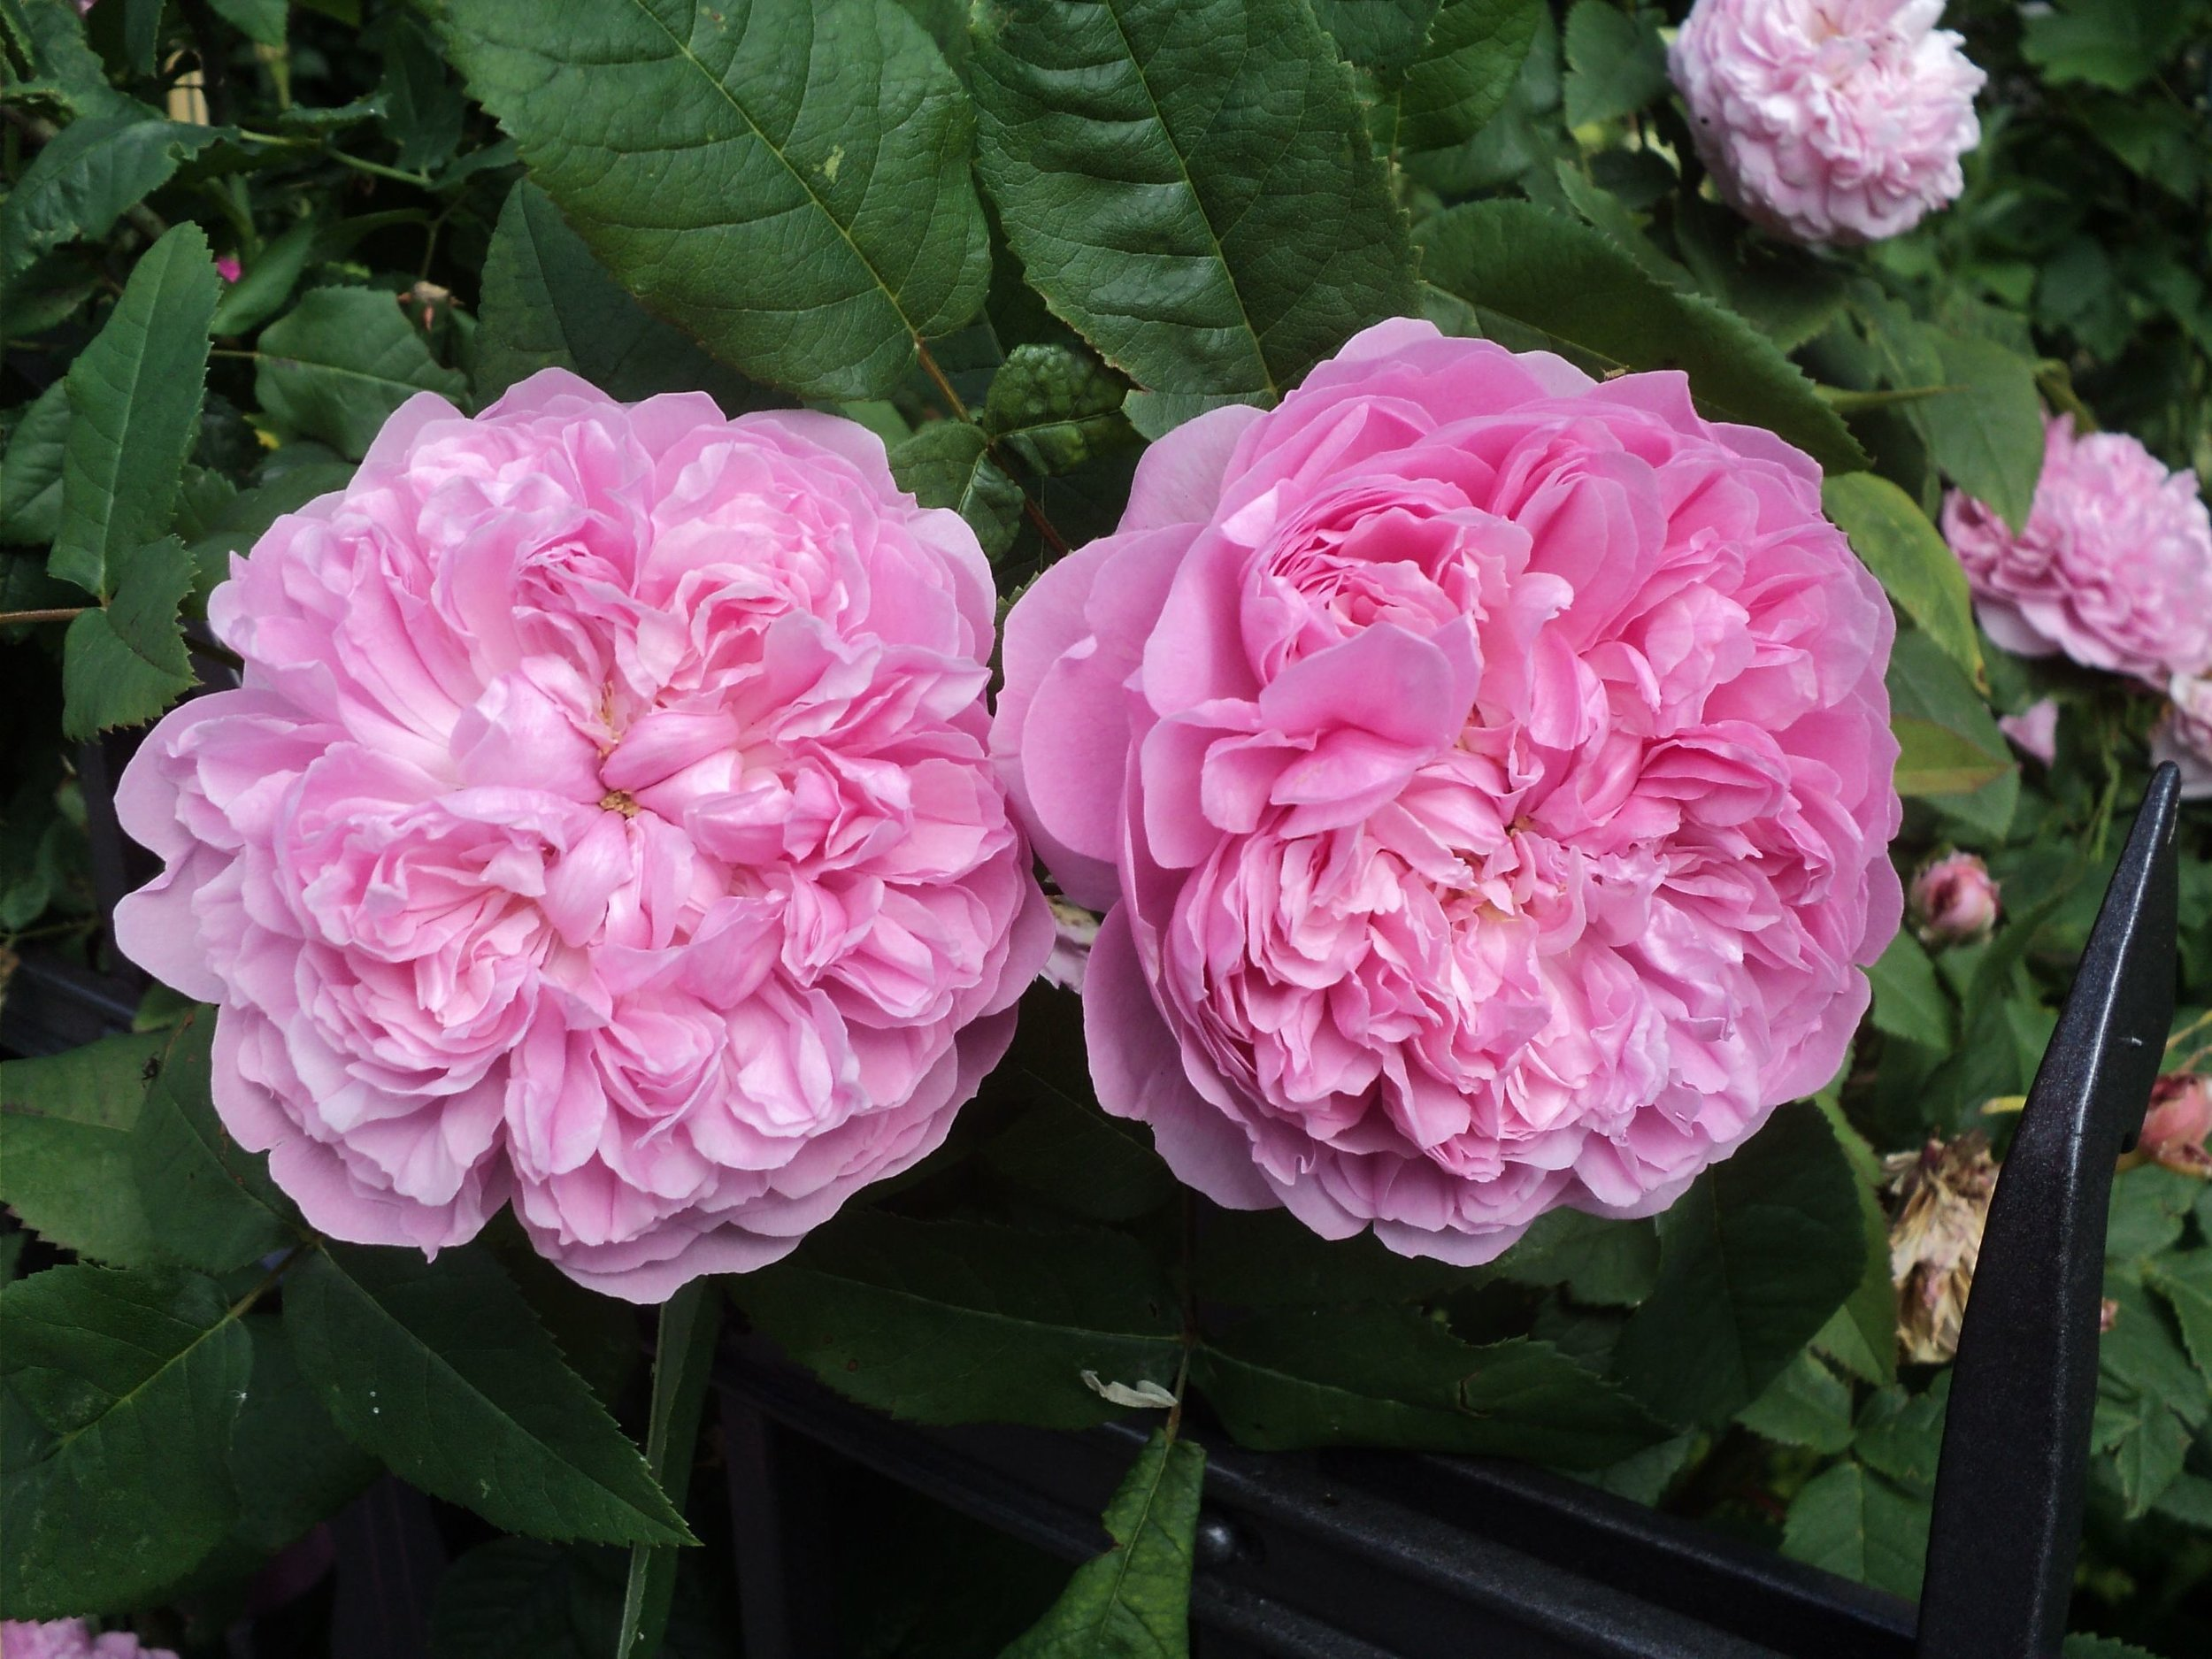 'Jacques Cartier' from £4.50